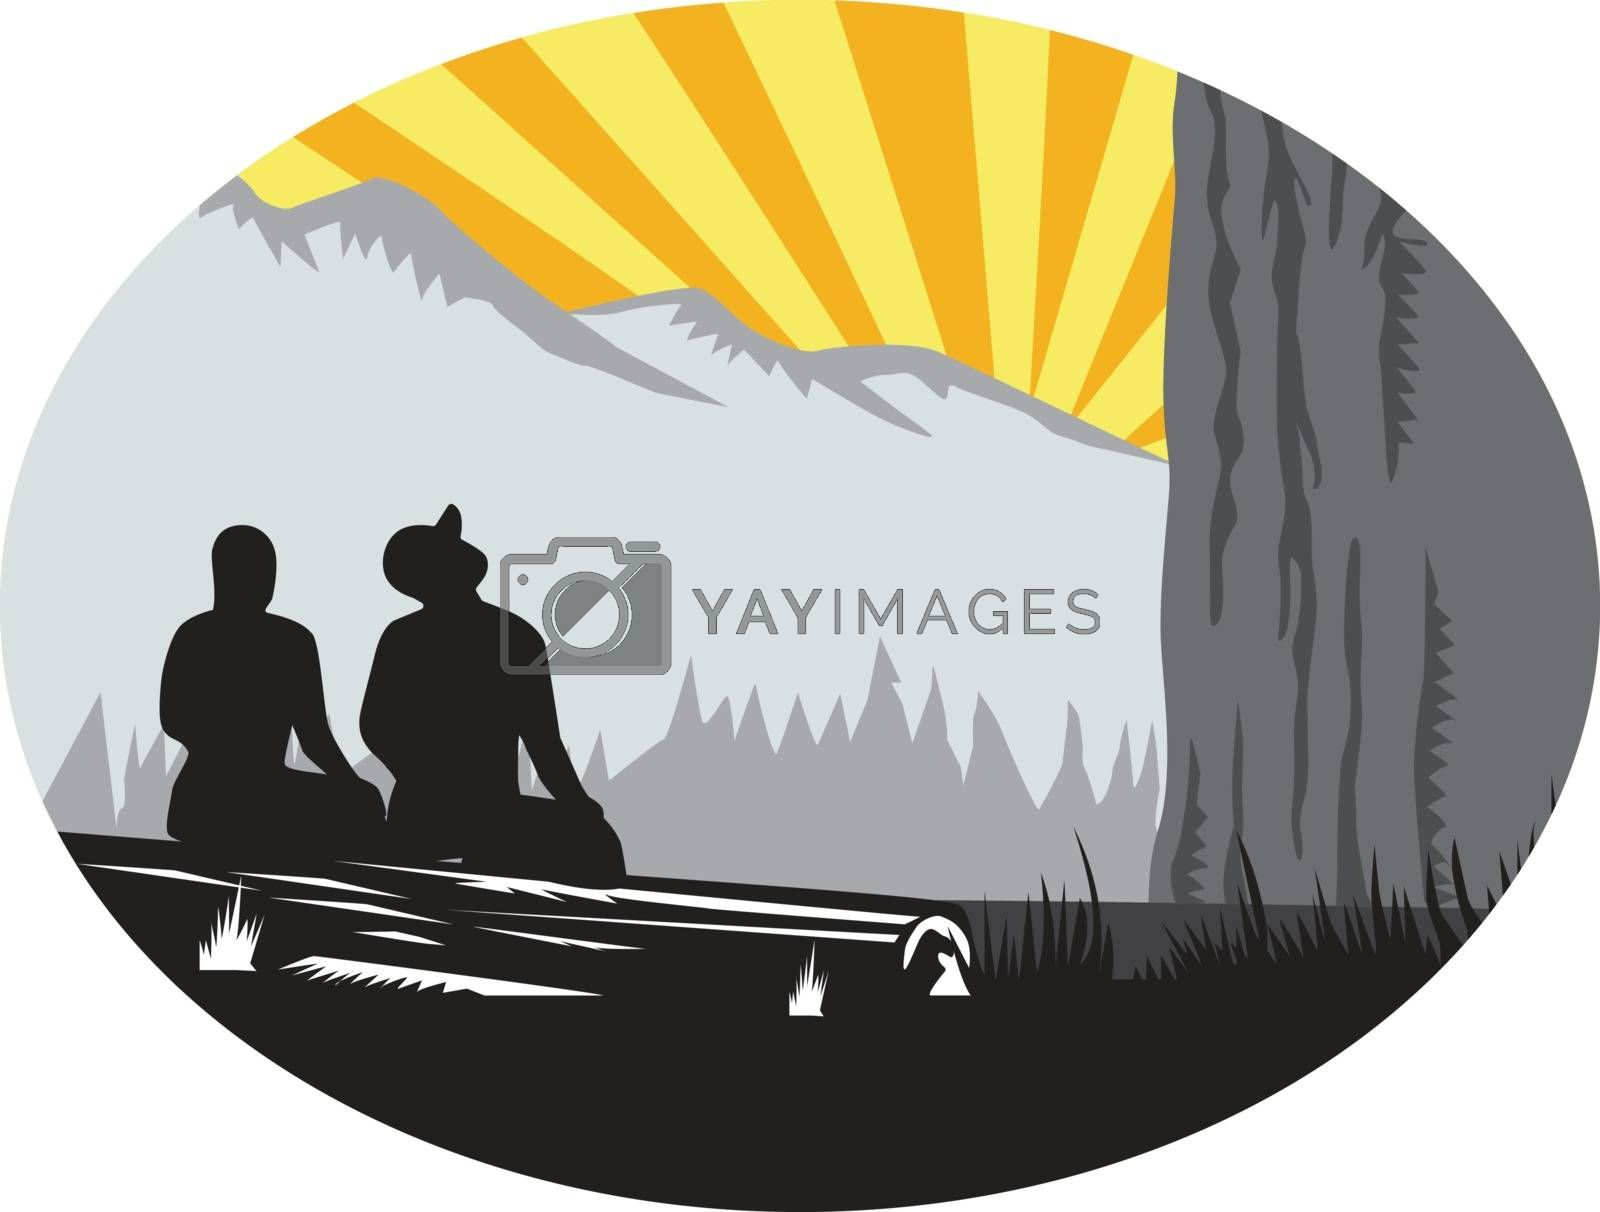 Illustration of  two trampers campers sitting on a log, one female and one male looking up to the mountain set inside oval shape with sunburst in the background done in retro woodcut style.